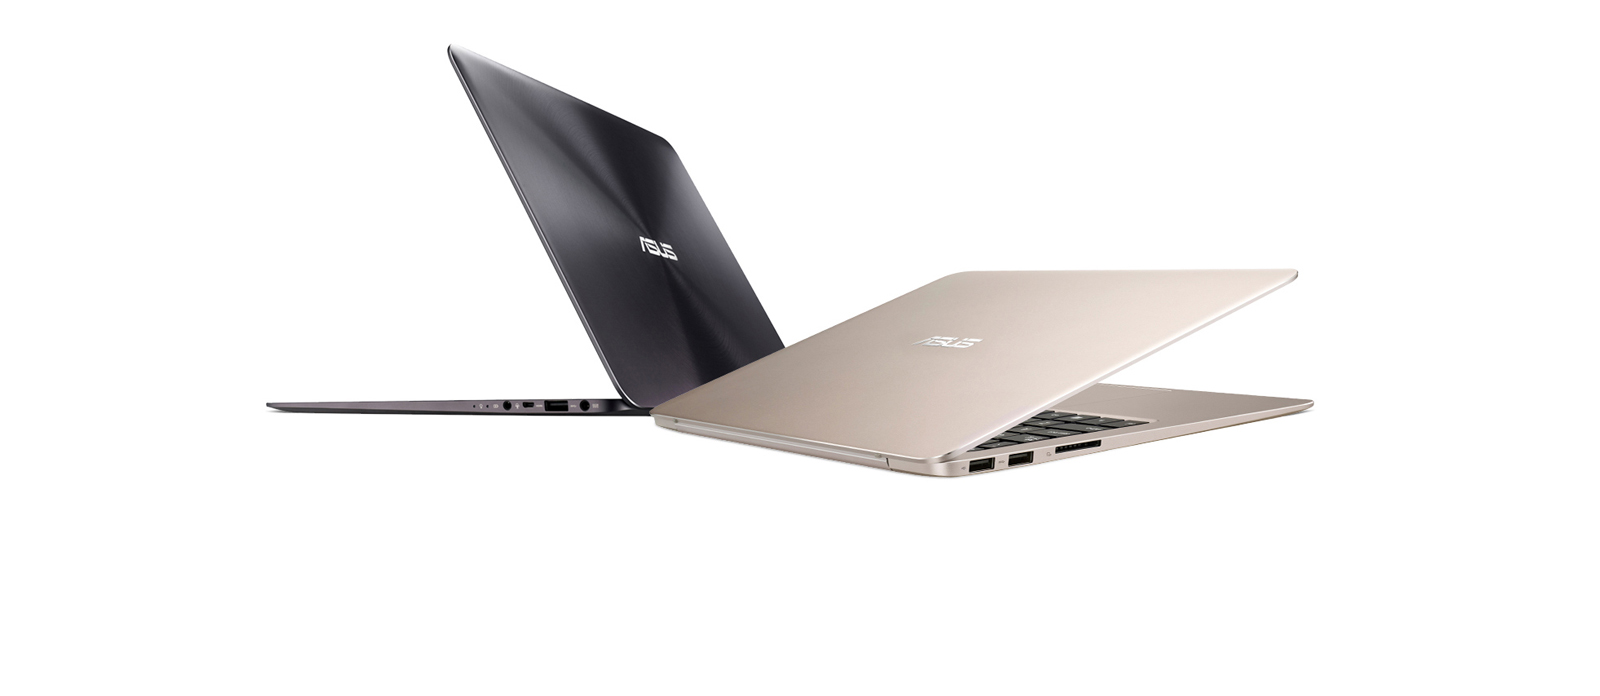 reputable site bb0af e9584 ASUS ZenBook UX305UA | Laptops | ASUS Global